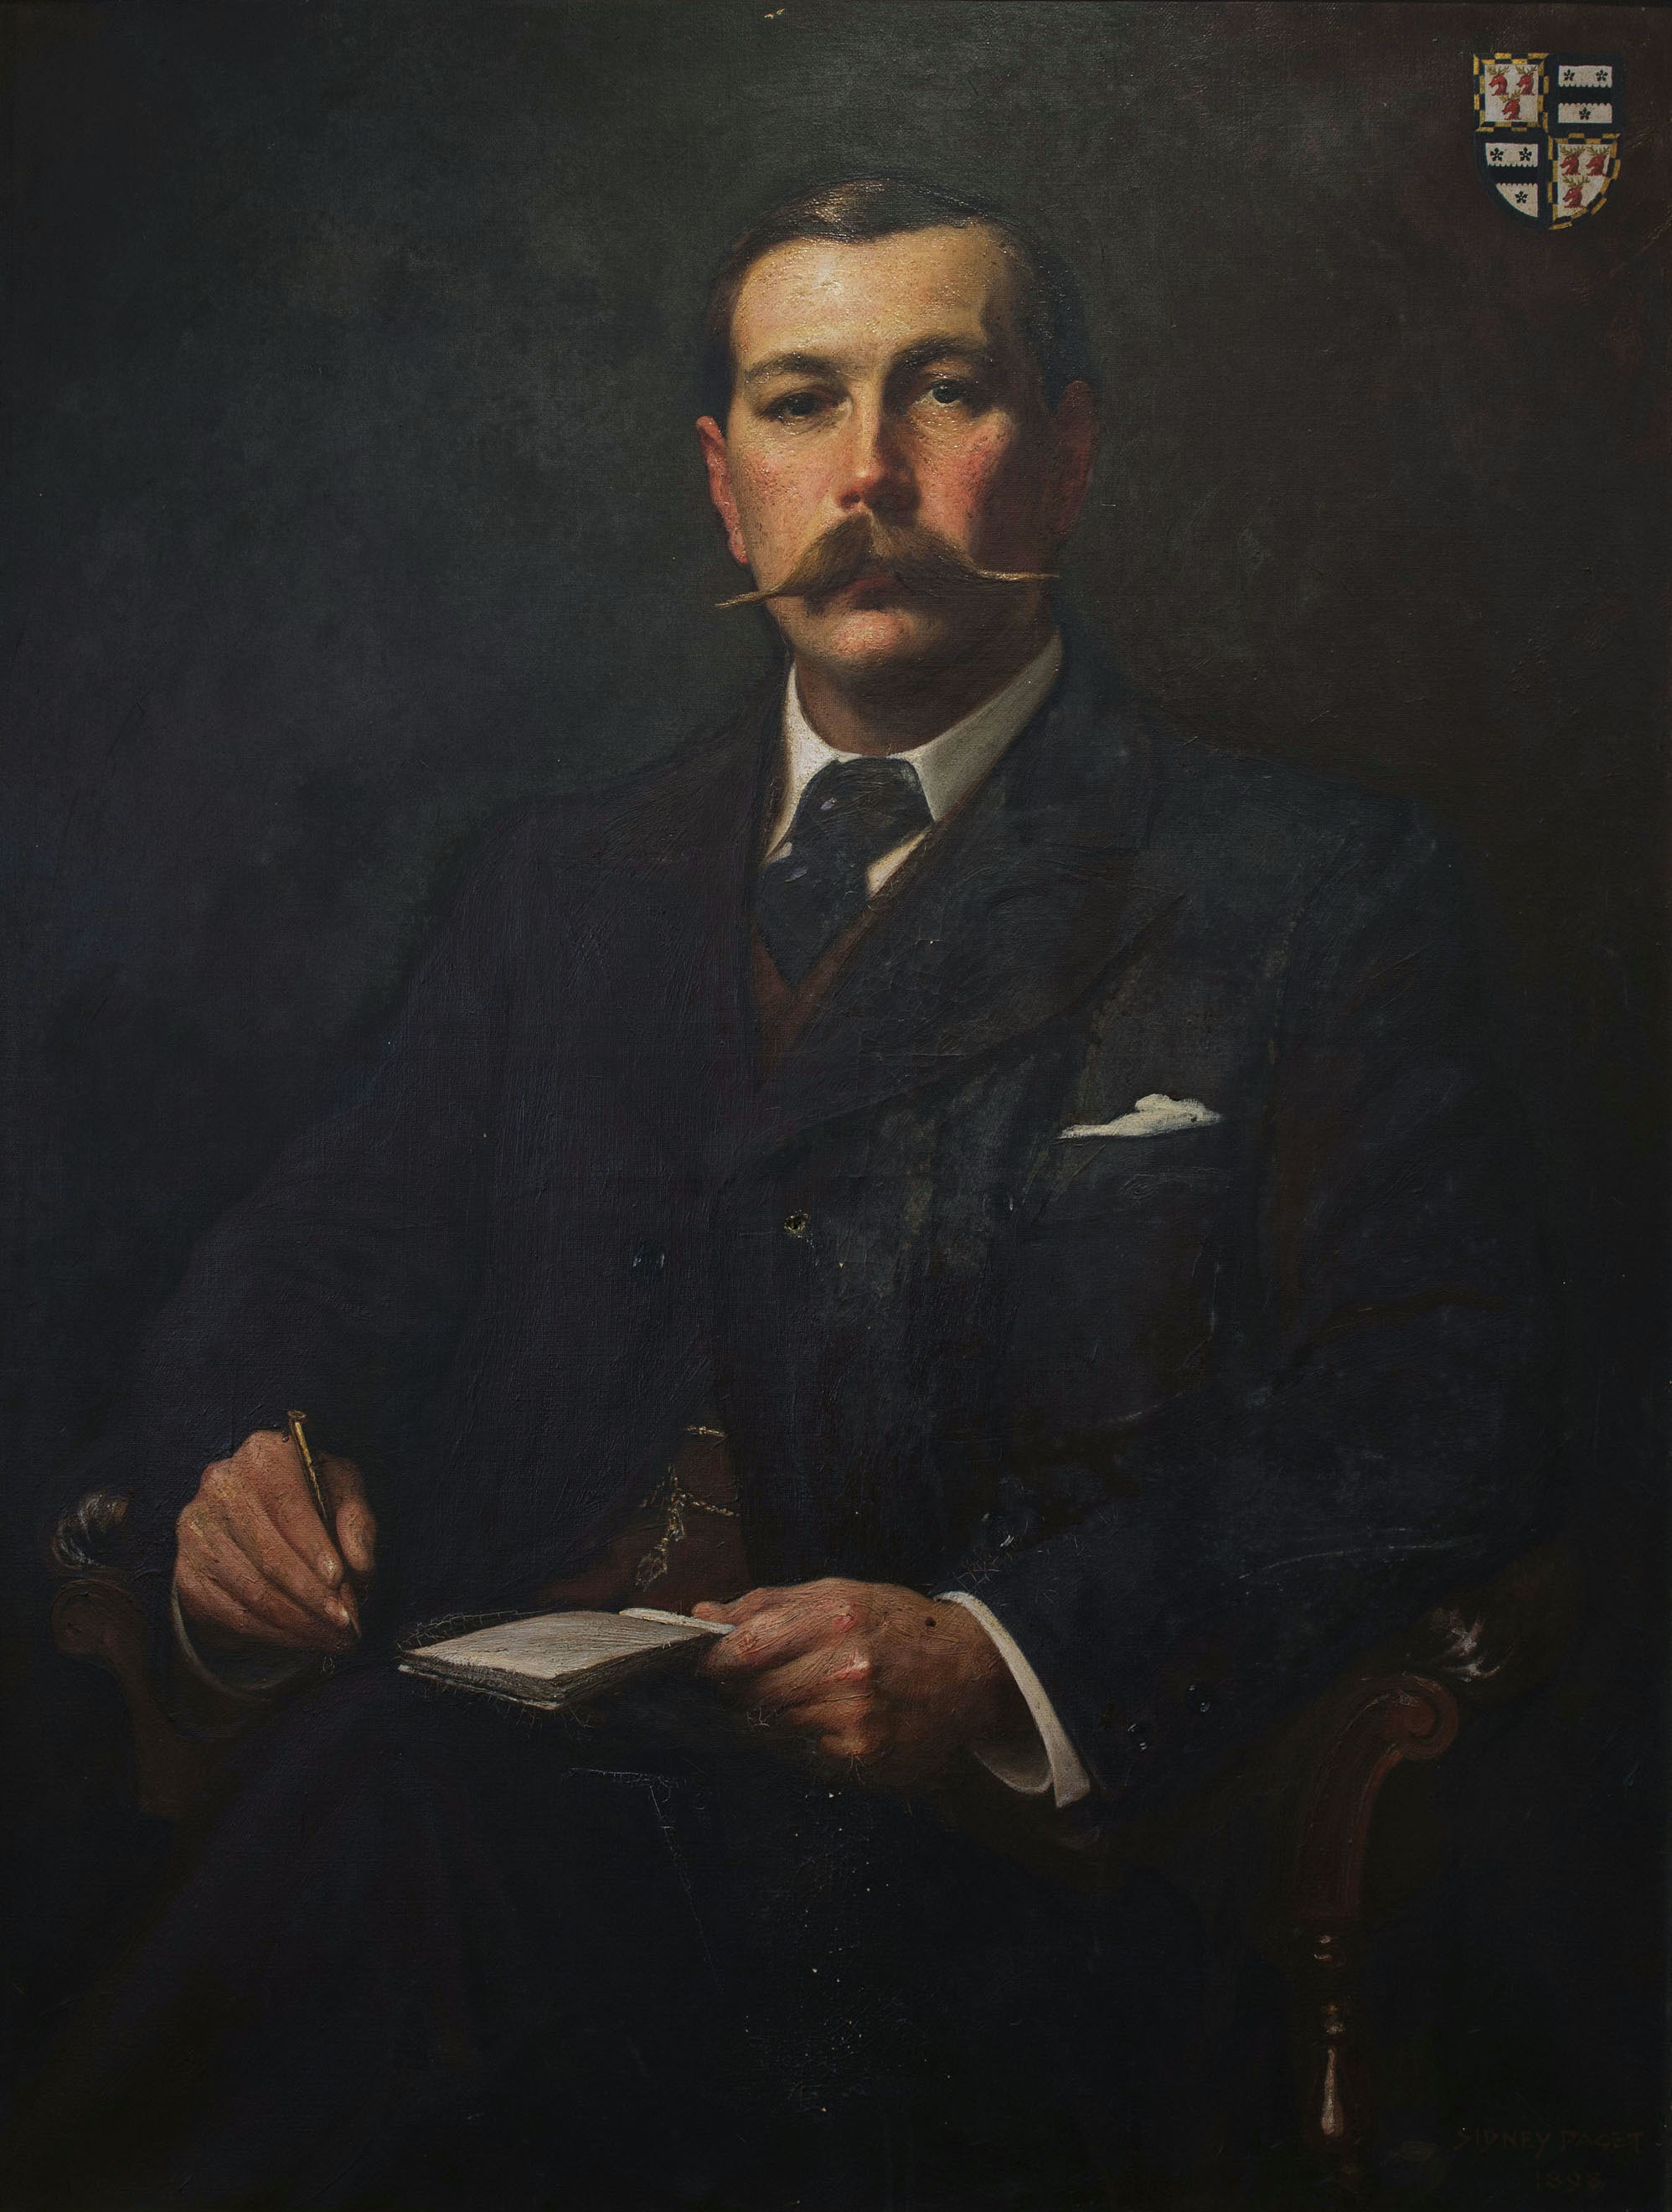 Portrait of Arthur Conan Doyle by Sidney Paget, c. 1890